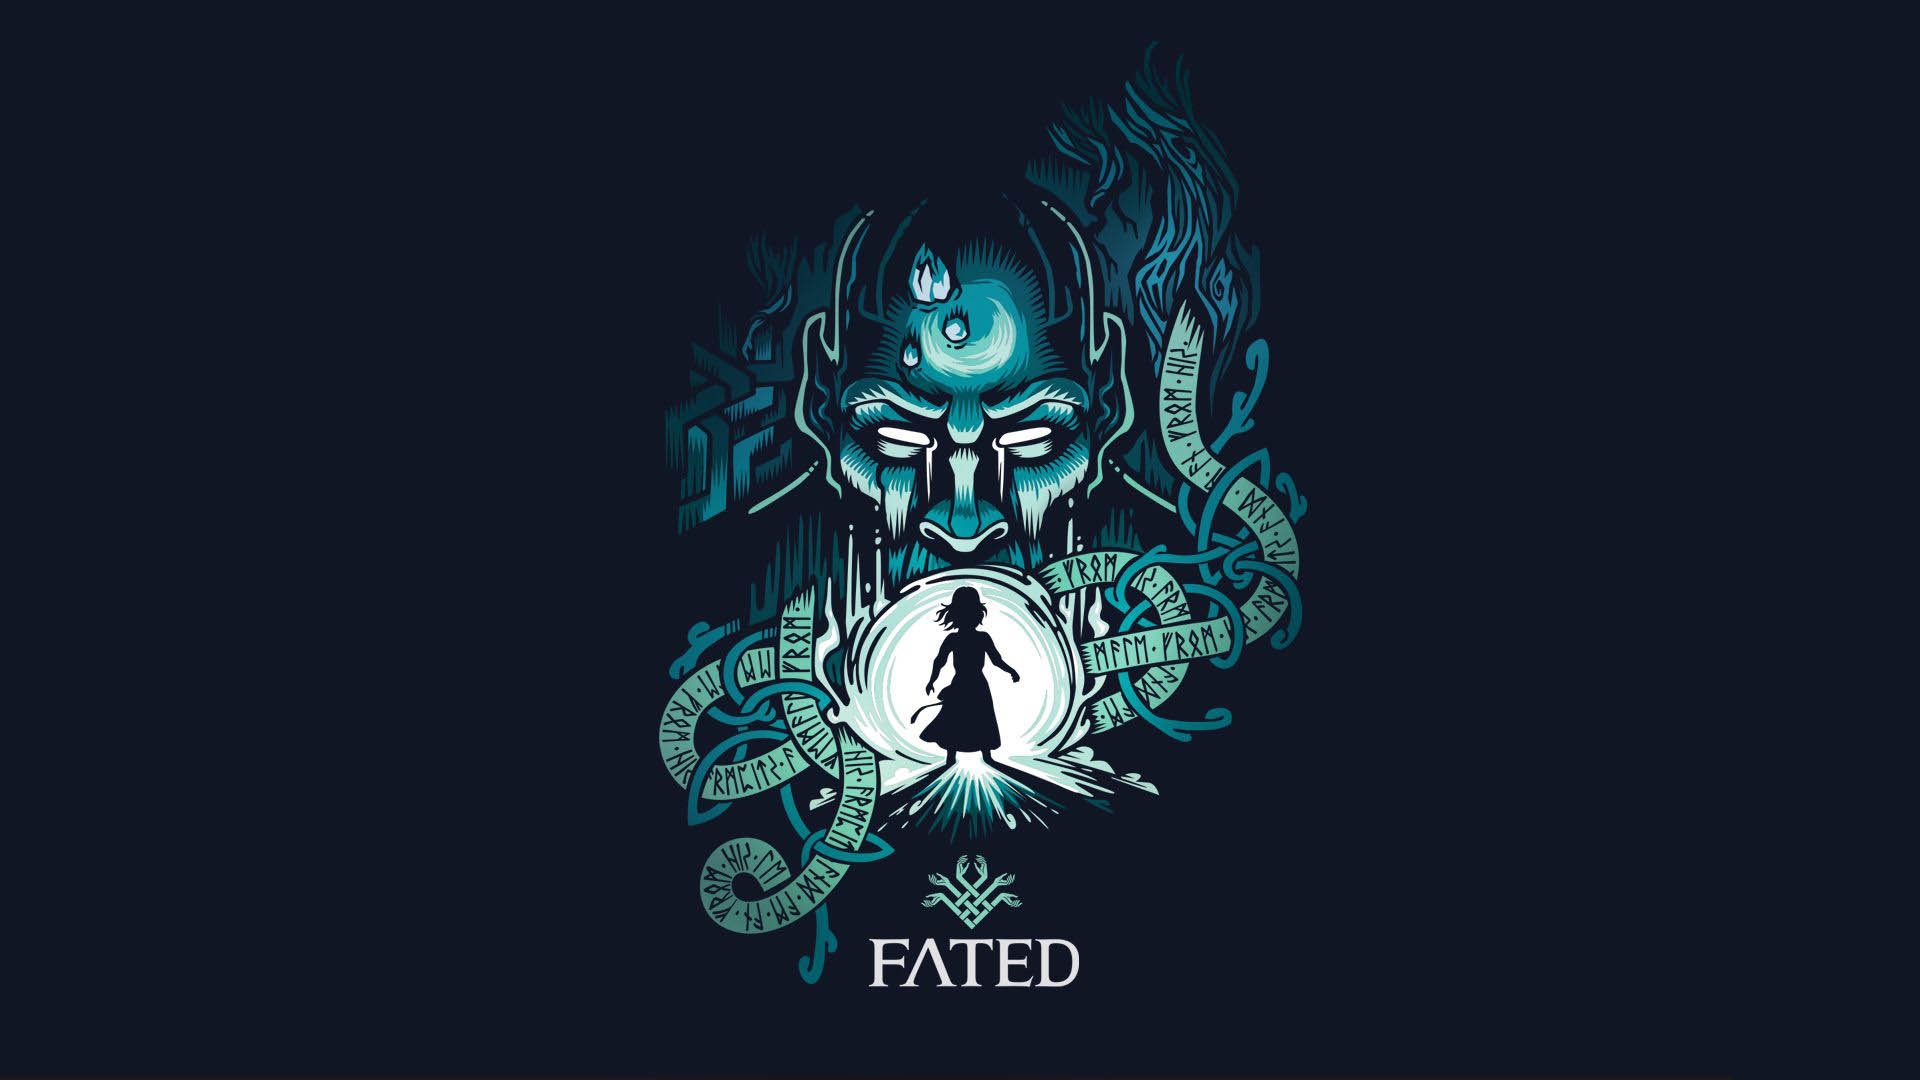 FATED The Silent Oath Launches On Oculus Rift And HTC Vive STG